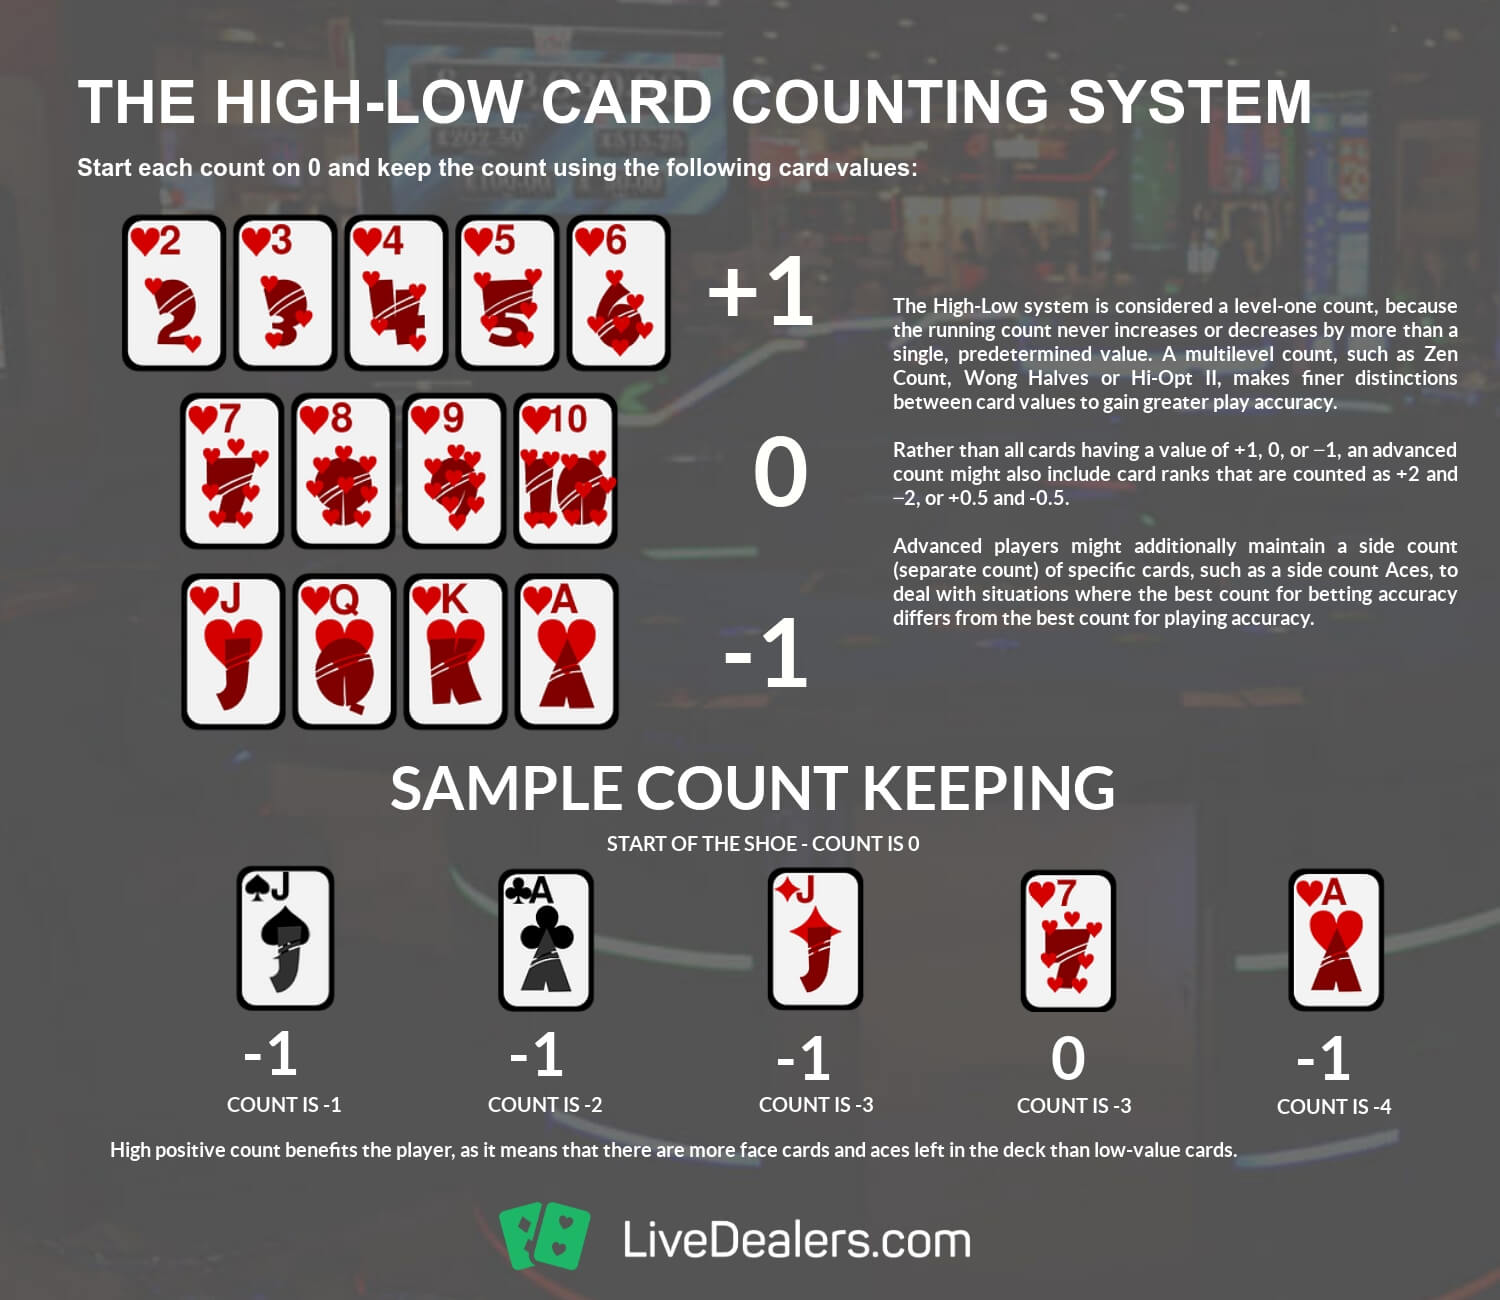 Blackjack card counting betting system michelle bettinger